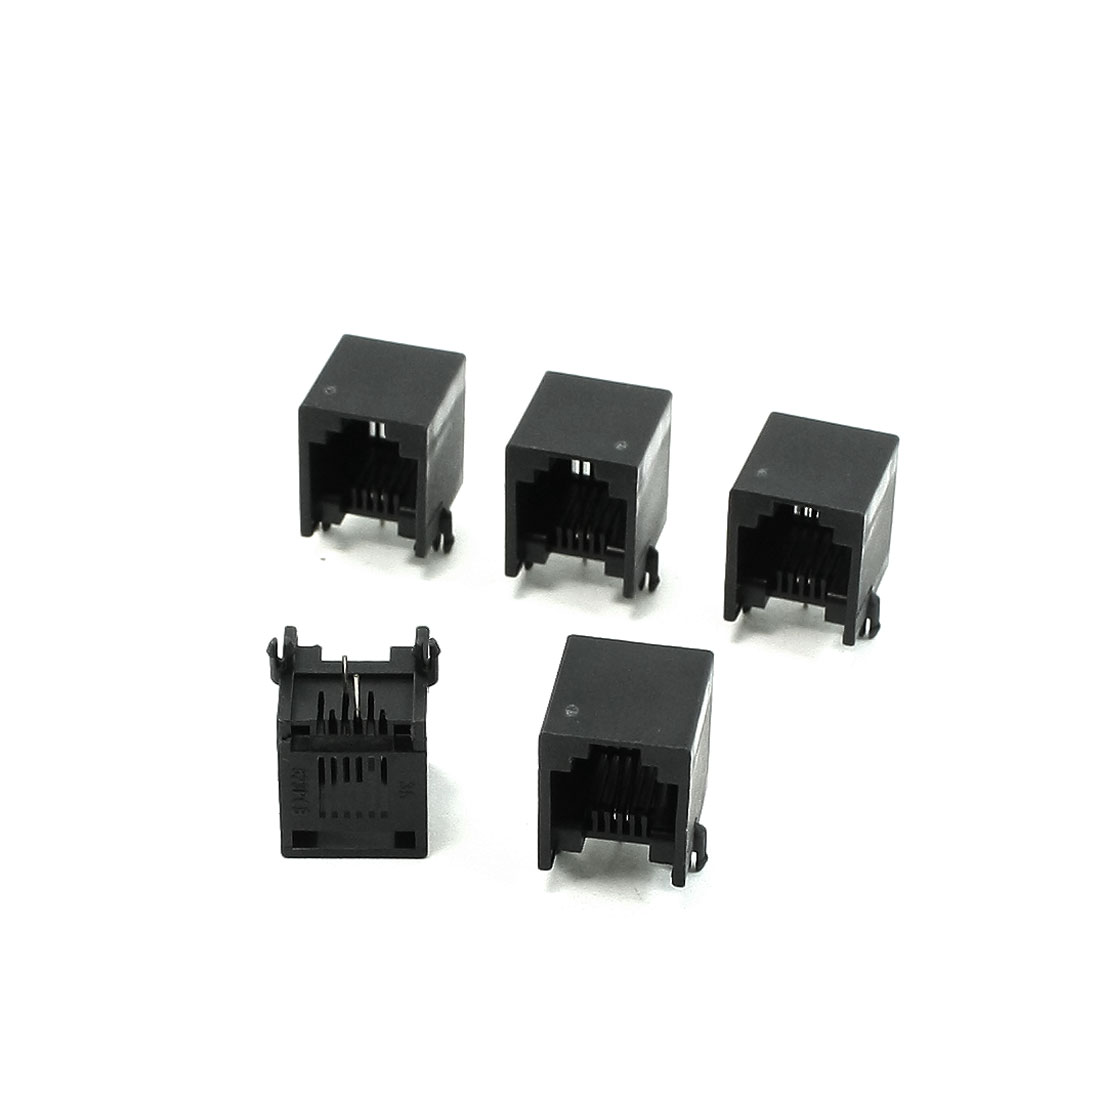 5 Pcs RJ11 6P2C Jack Telephone Line Socket 13 x 12 x 14mm